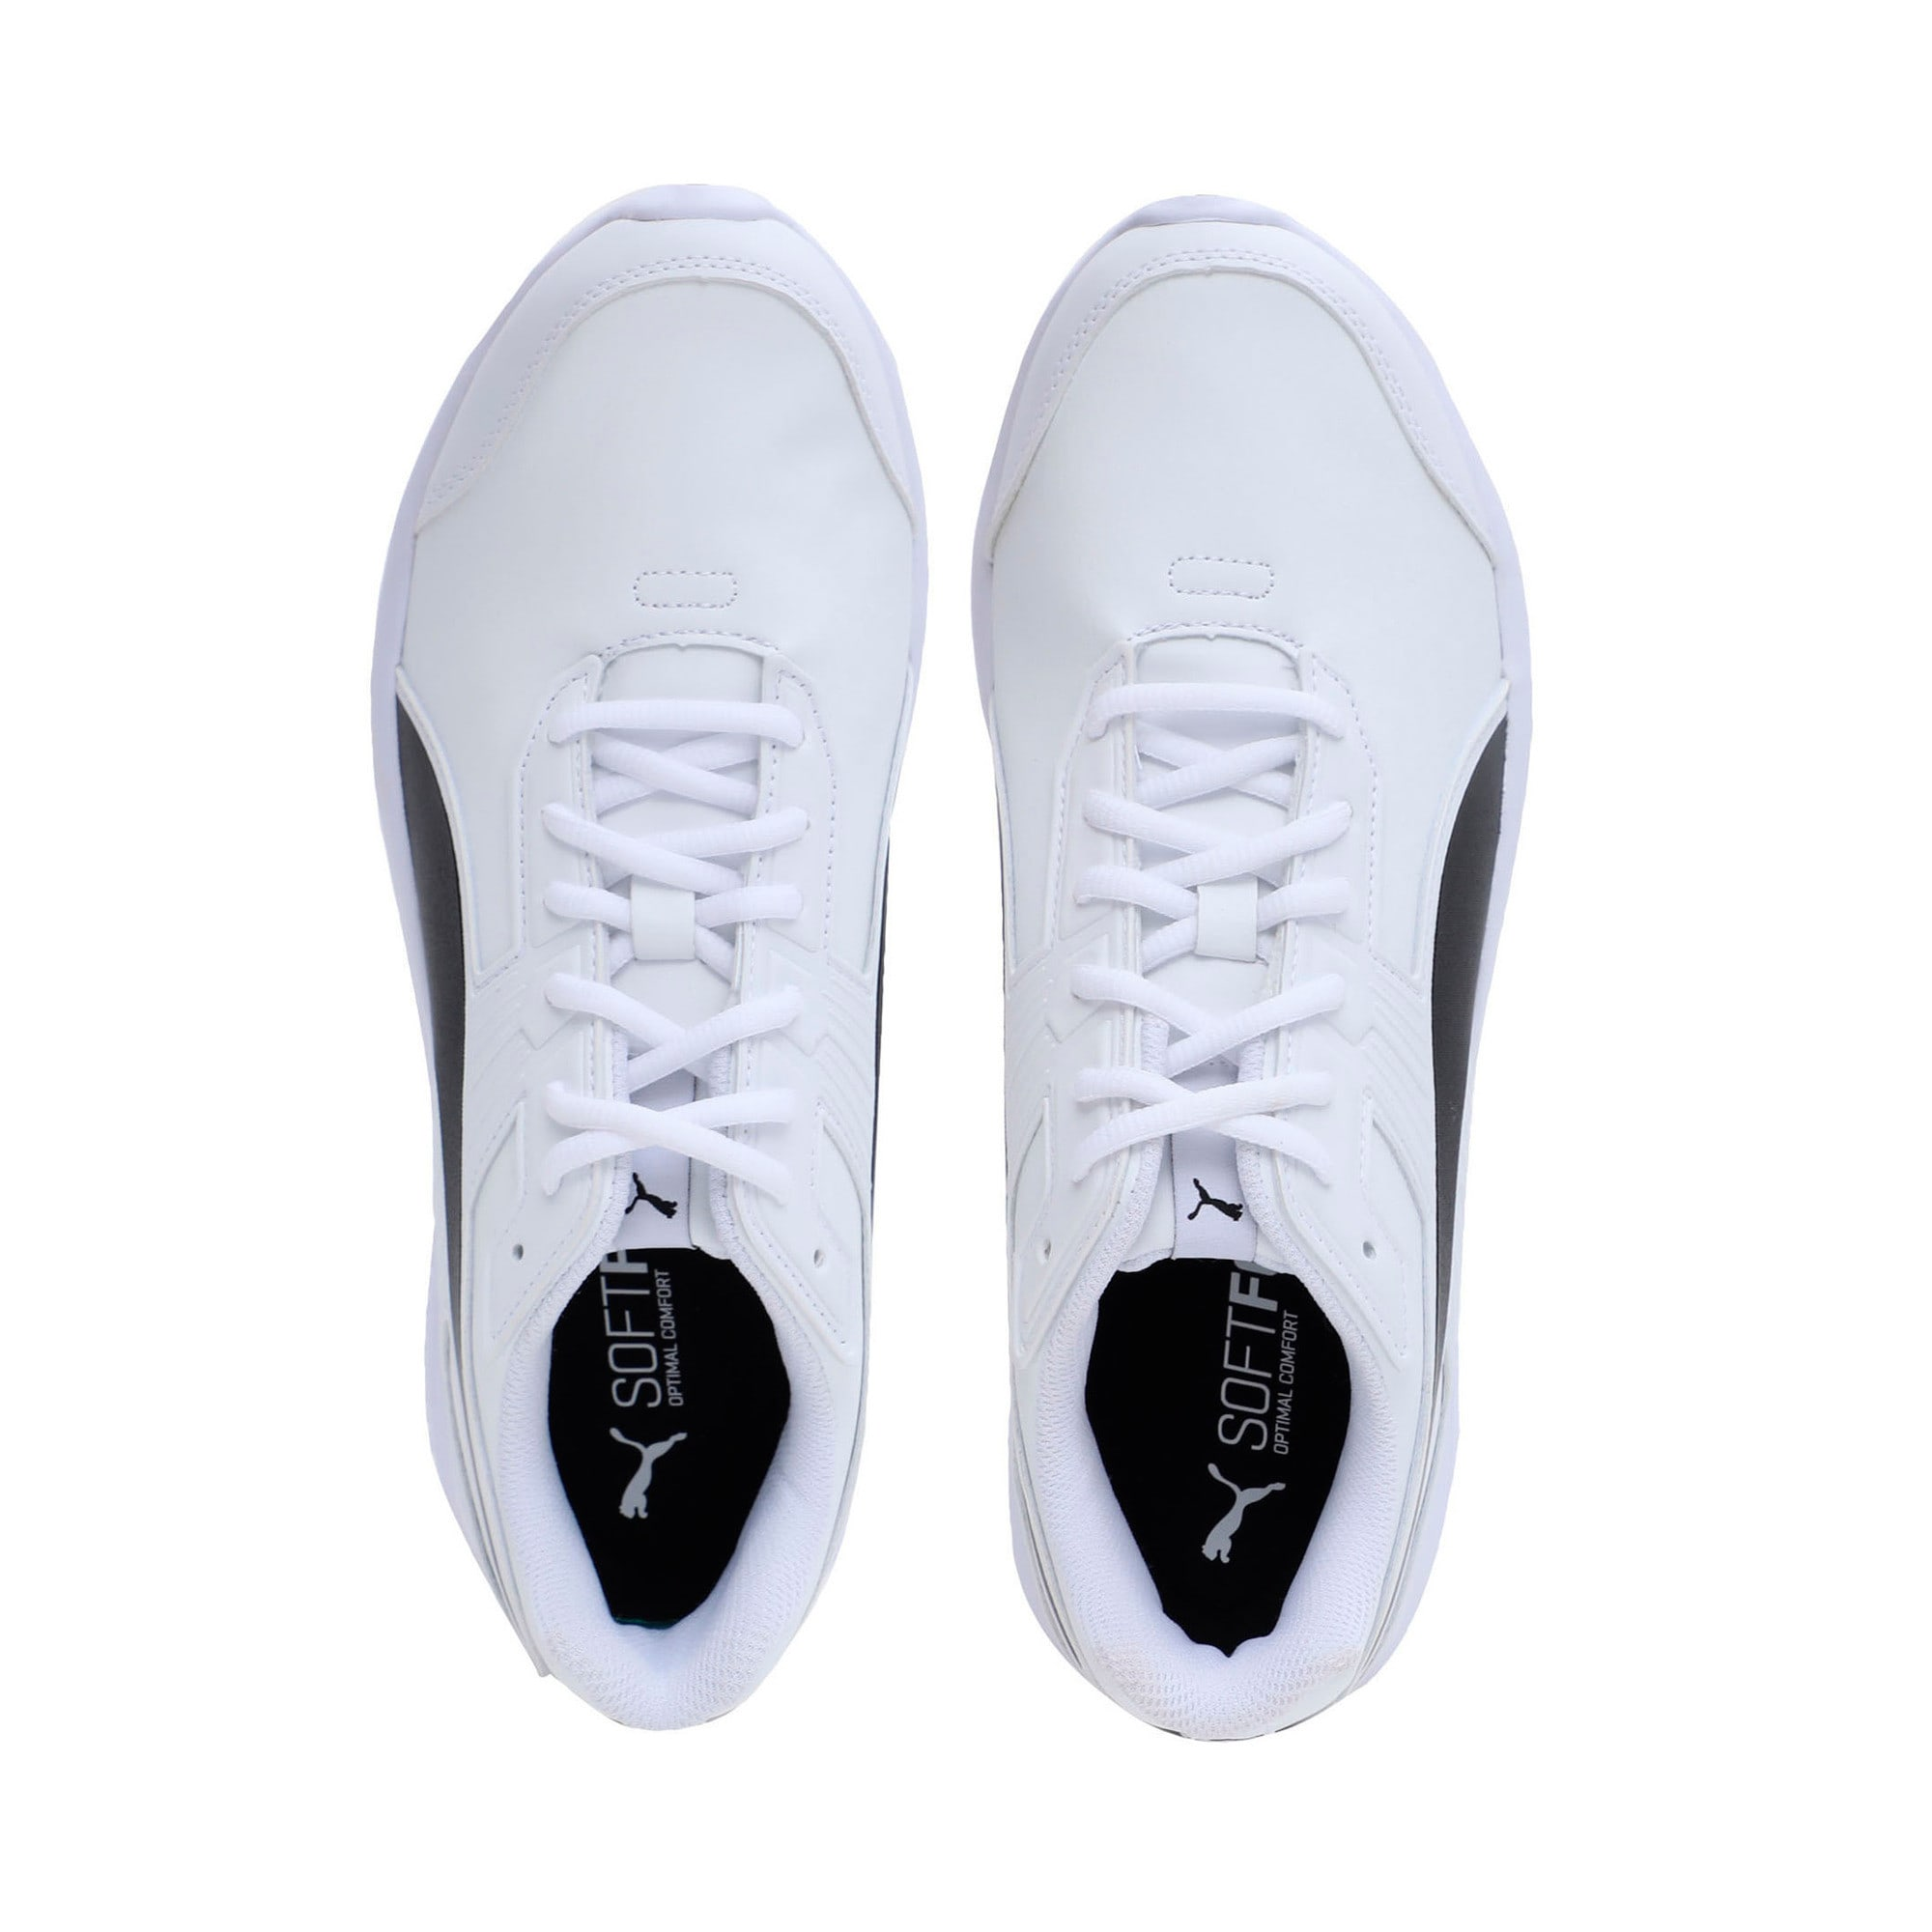 Thumbnail 6 of Escaper SL Trainers, Puma White-Puma Black, medium-IND